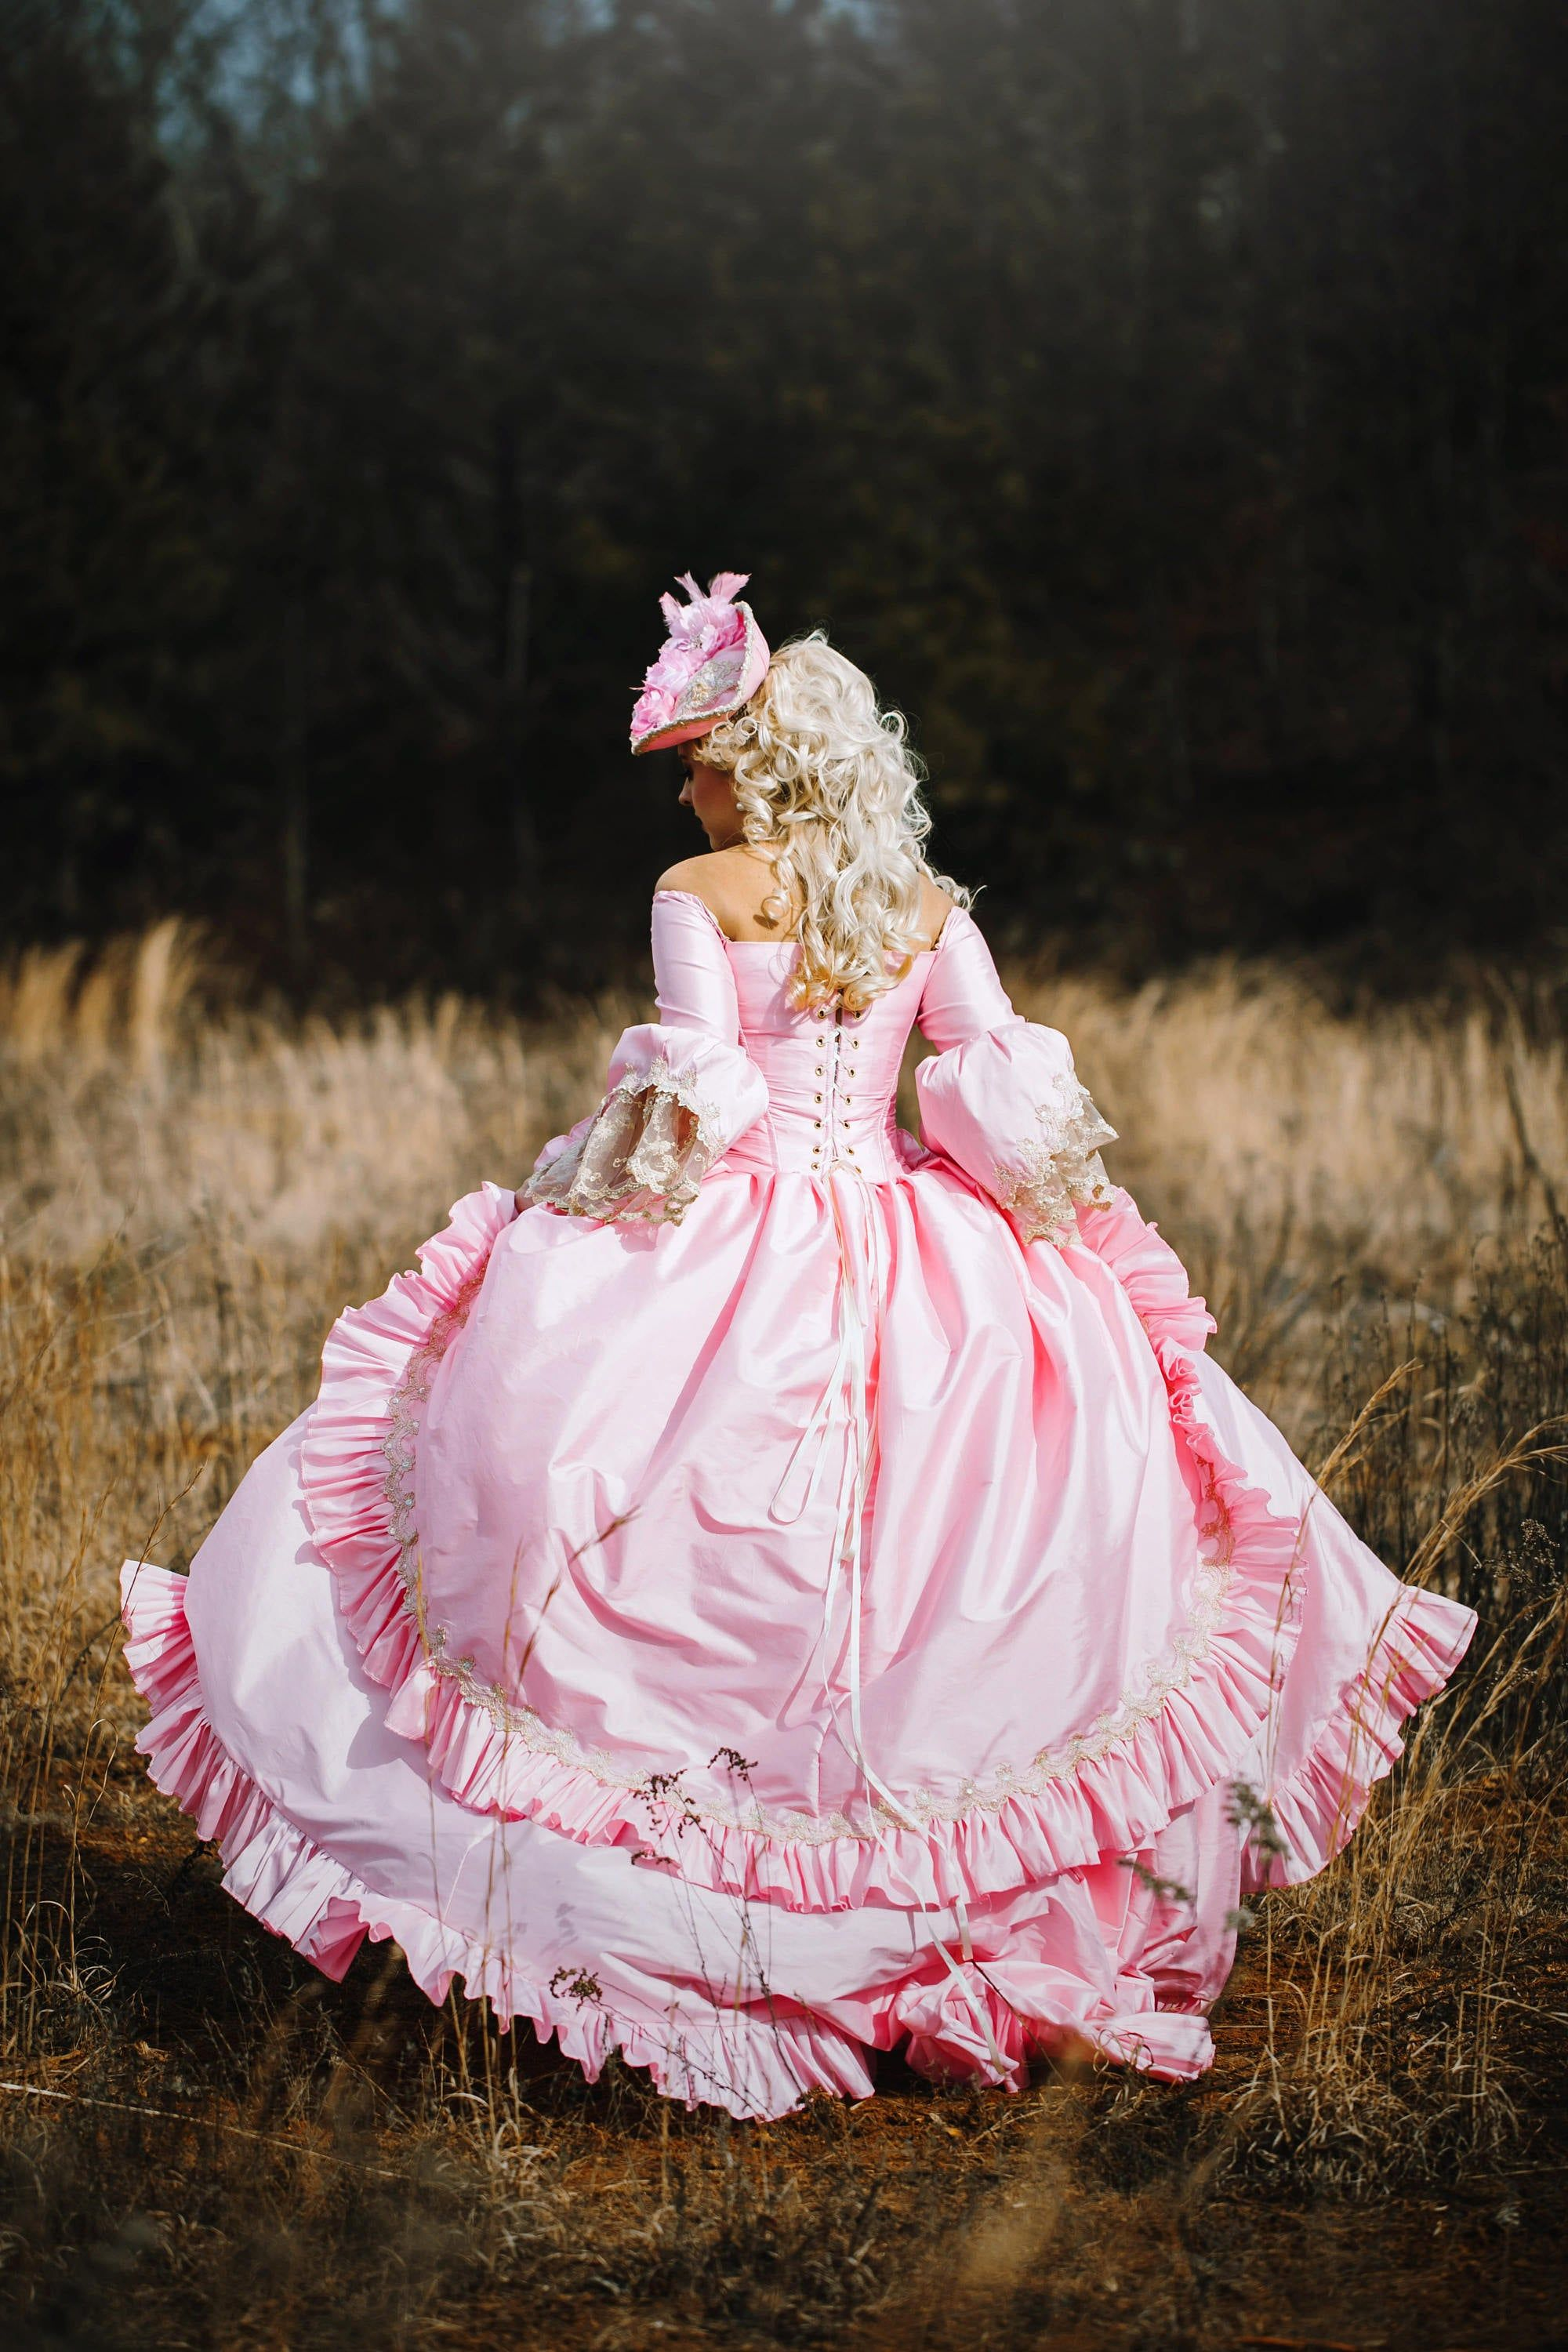 Custom Pink Champagne Marie Antoinette Upscale Victorian Image 1 Victorian Gown Fantasy Gown Historical Dresses [ 3000 x 2000 Pixel ]